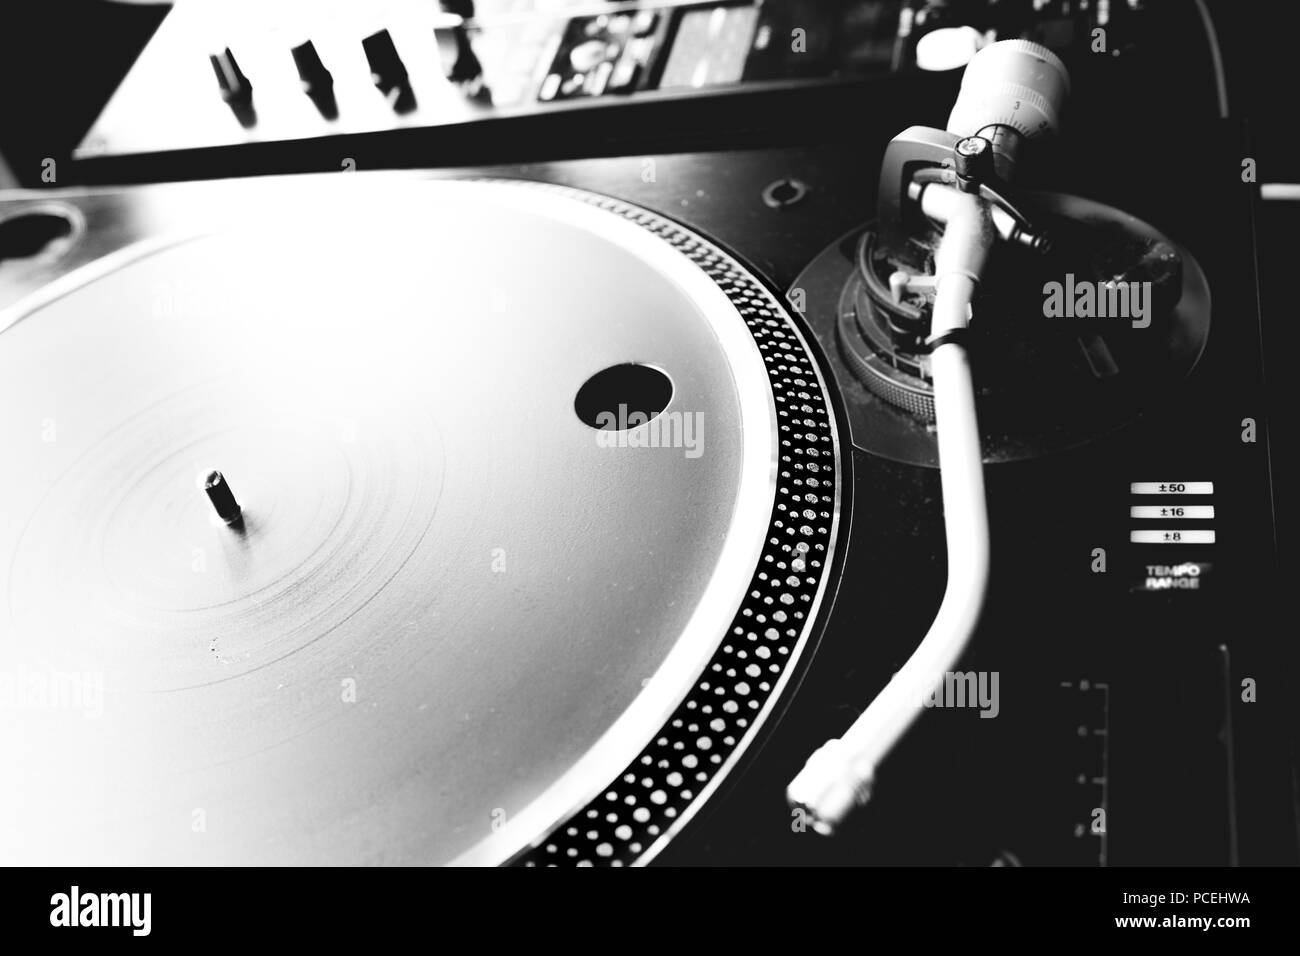 Black & white photo of a dj's turntable - Stock Image